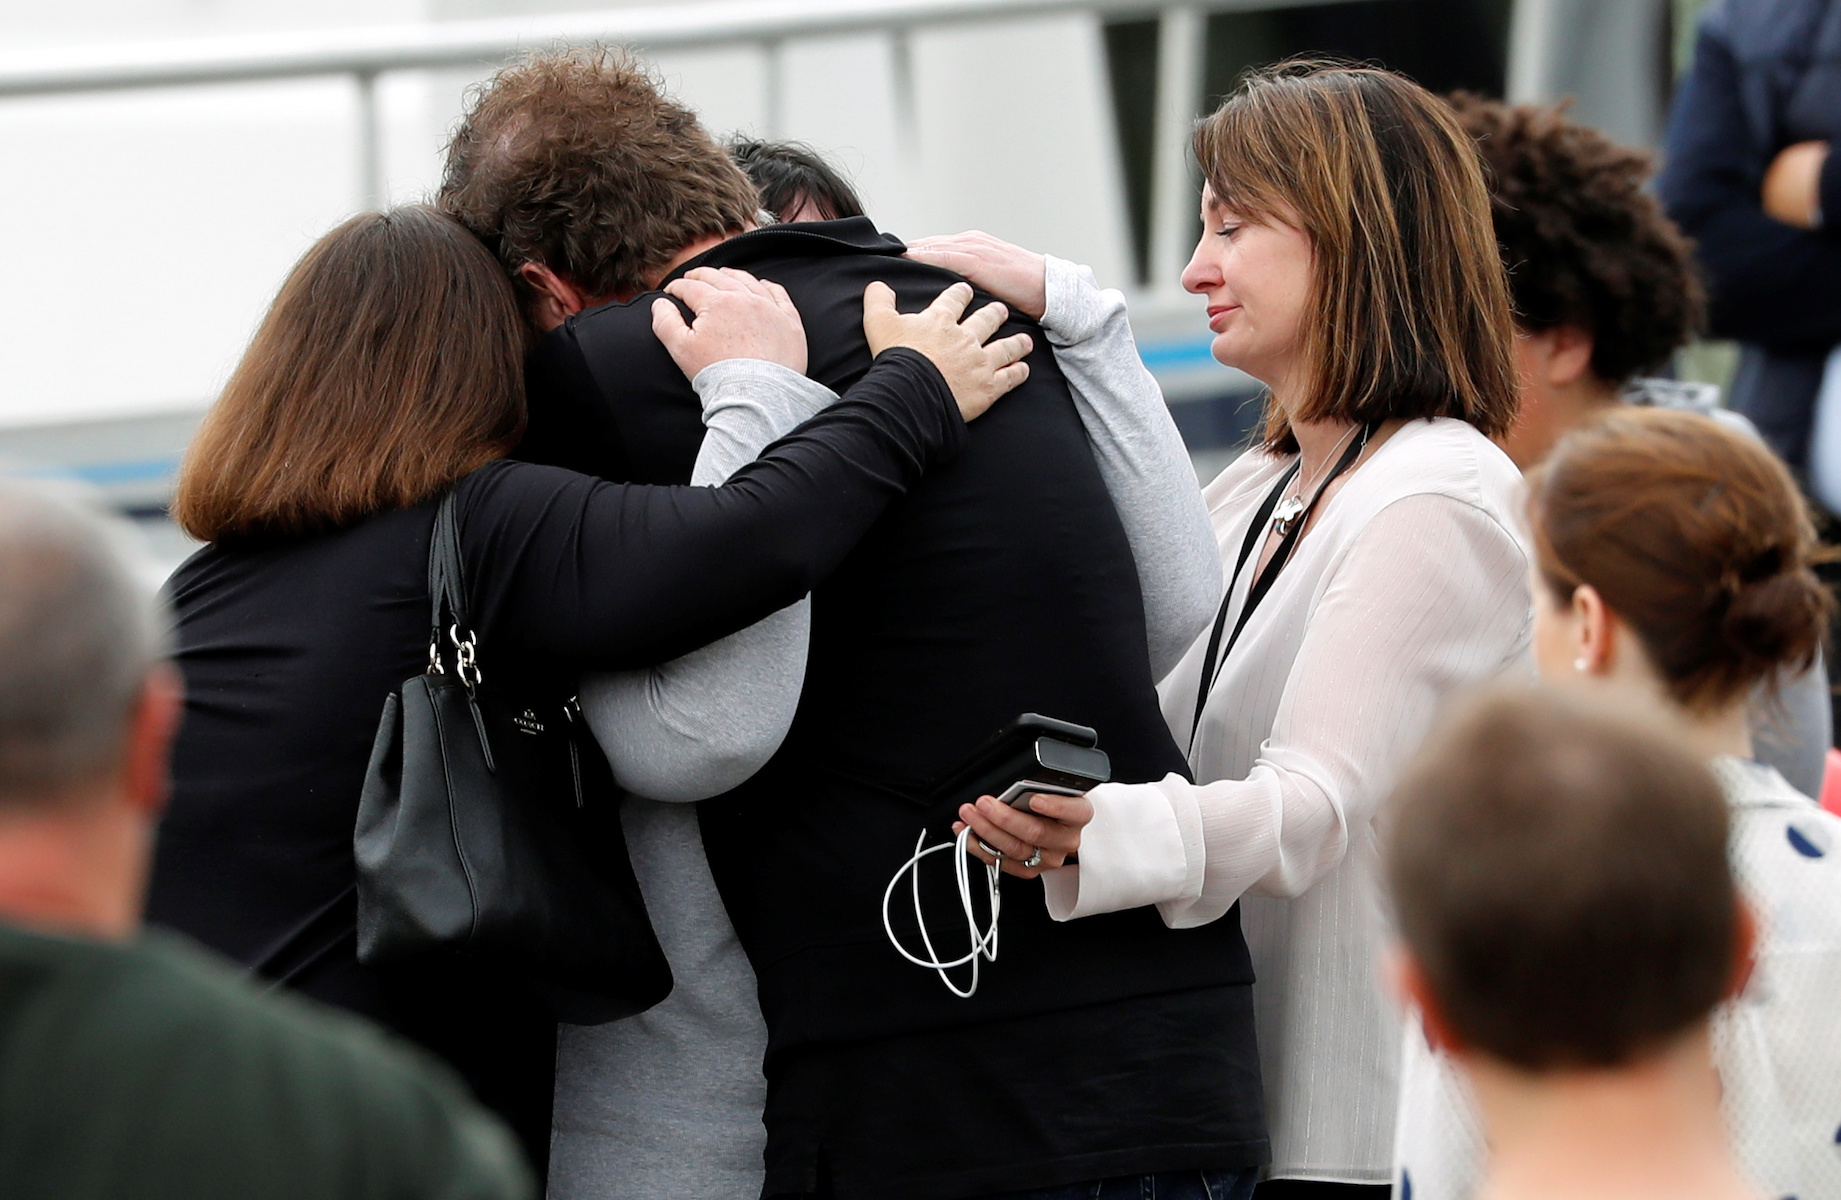 Relatives hug as they wait for rescue mission, following the White Island volcano eruption in Whakatane